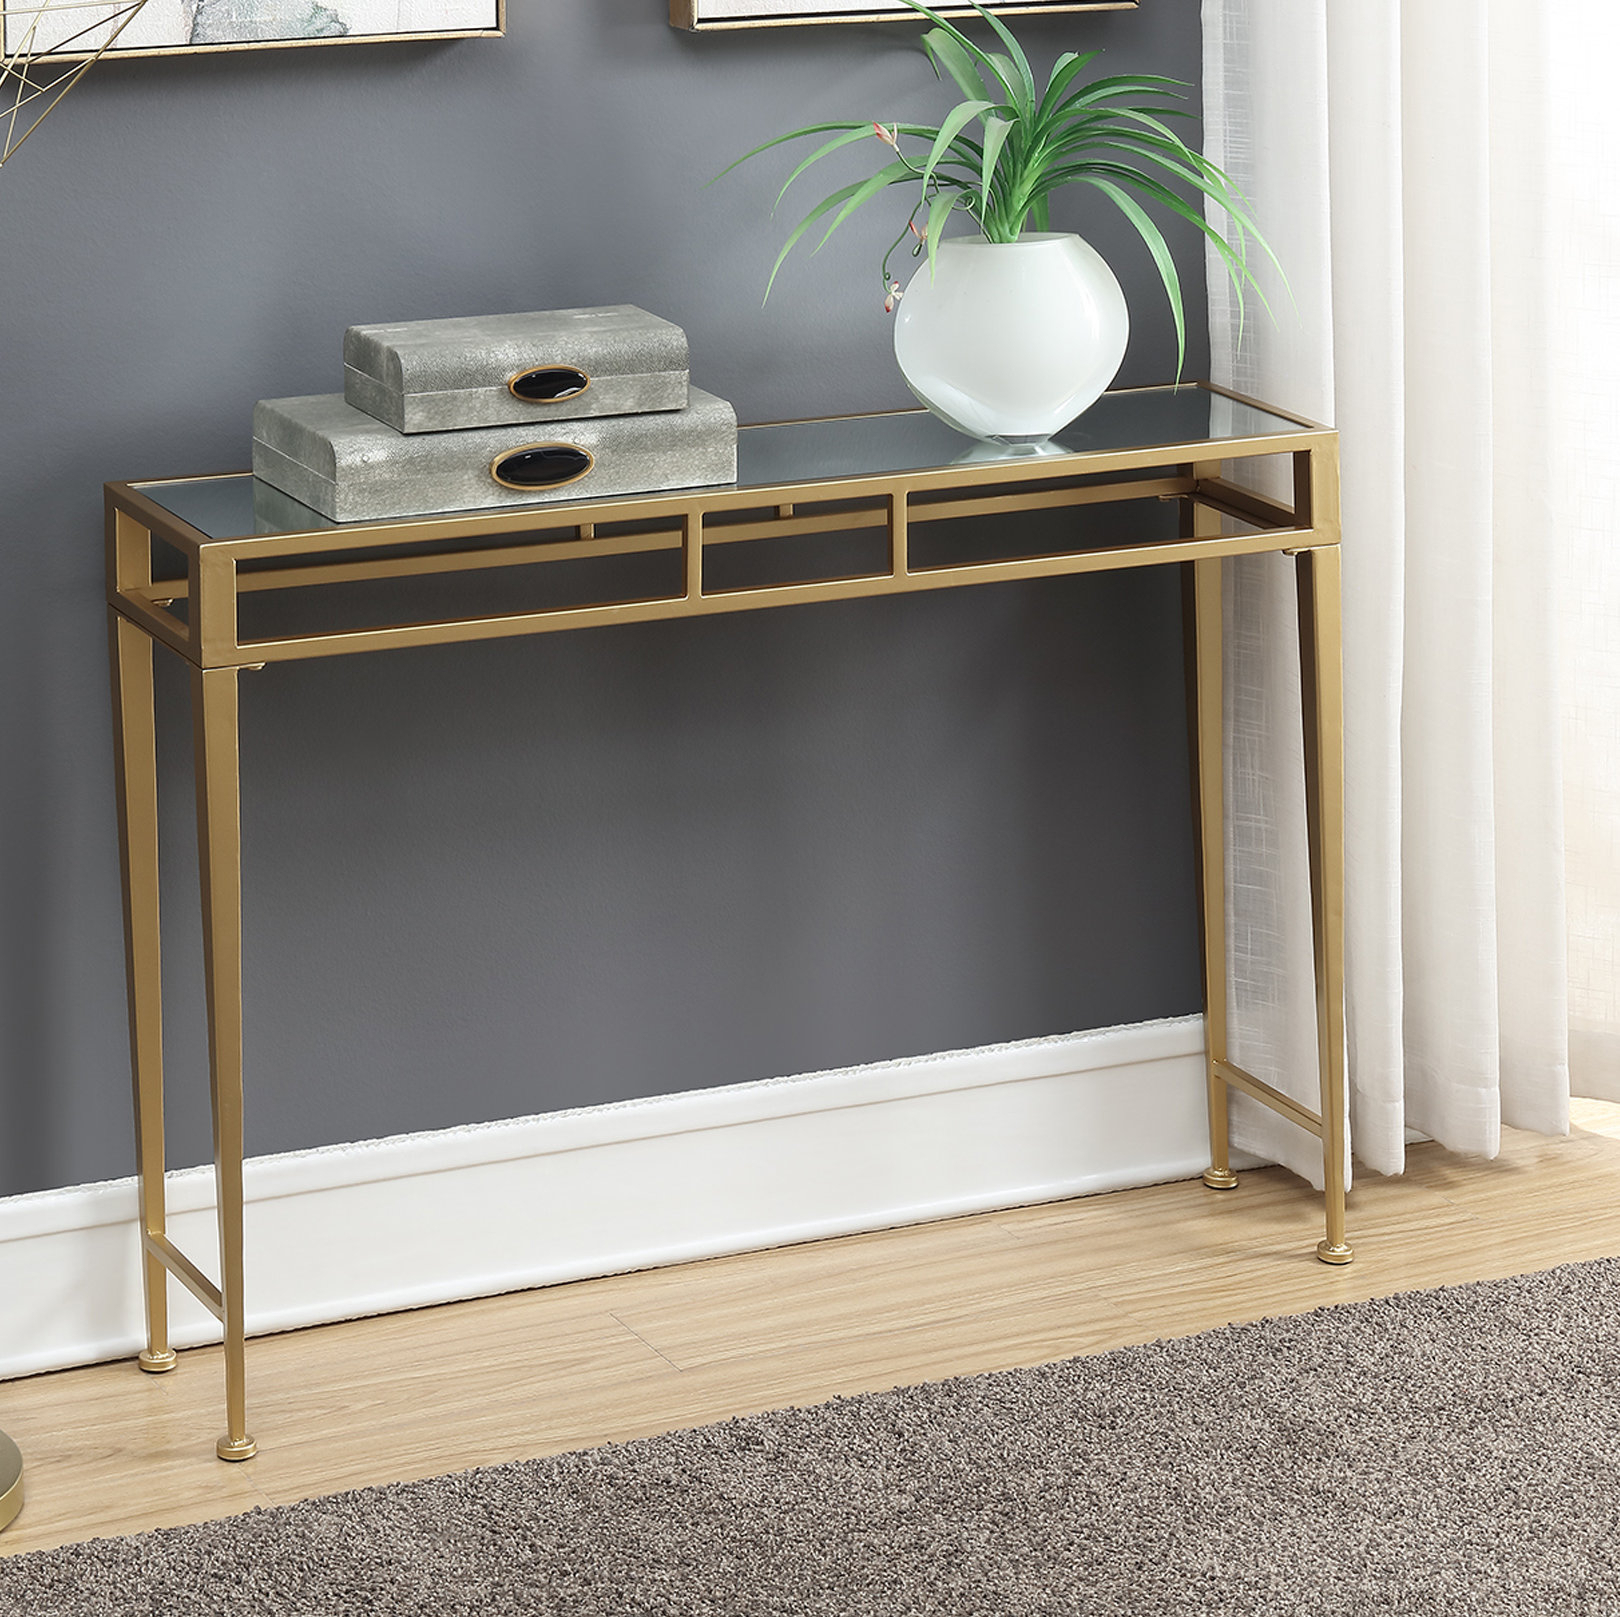 Gold Console Tables You'll Love | Wayfair pertaining to Natural Wood Mirrored Media Console Tables (Image 14 of 30)